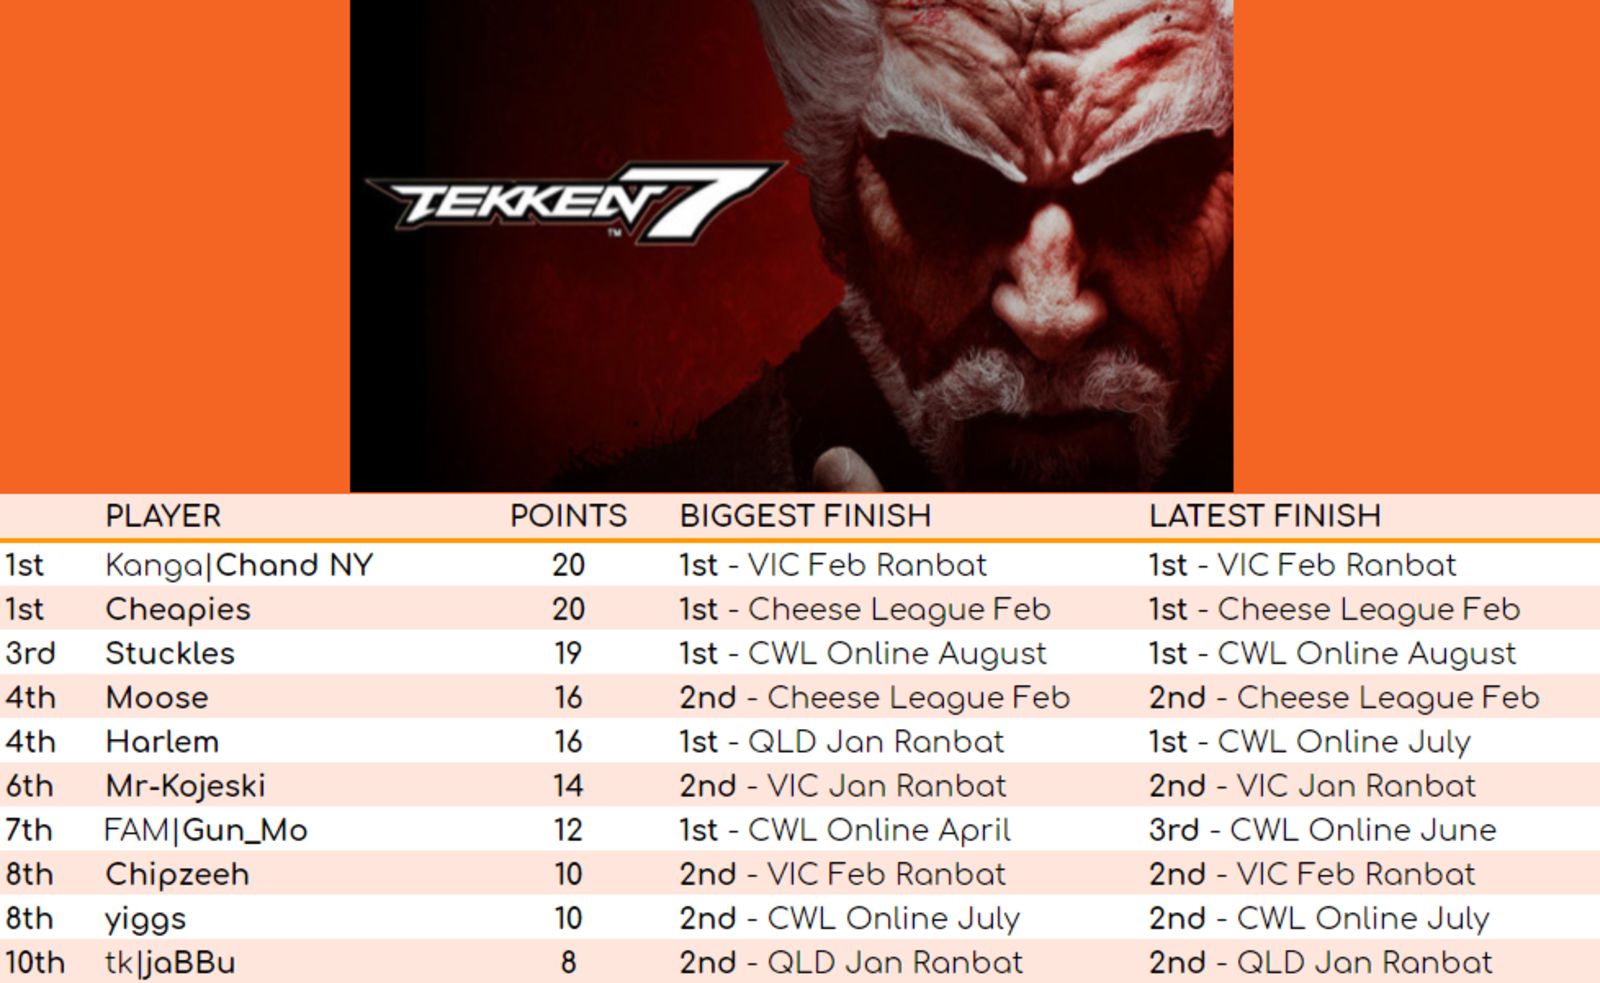 Tekken leaderboard for August